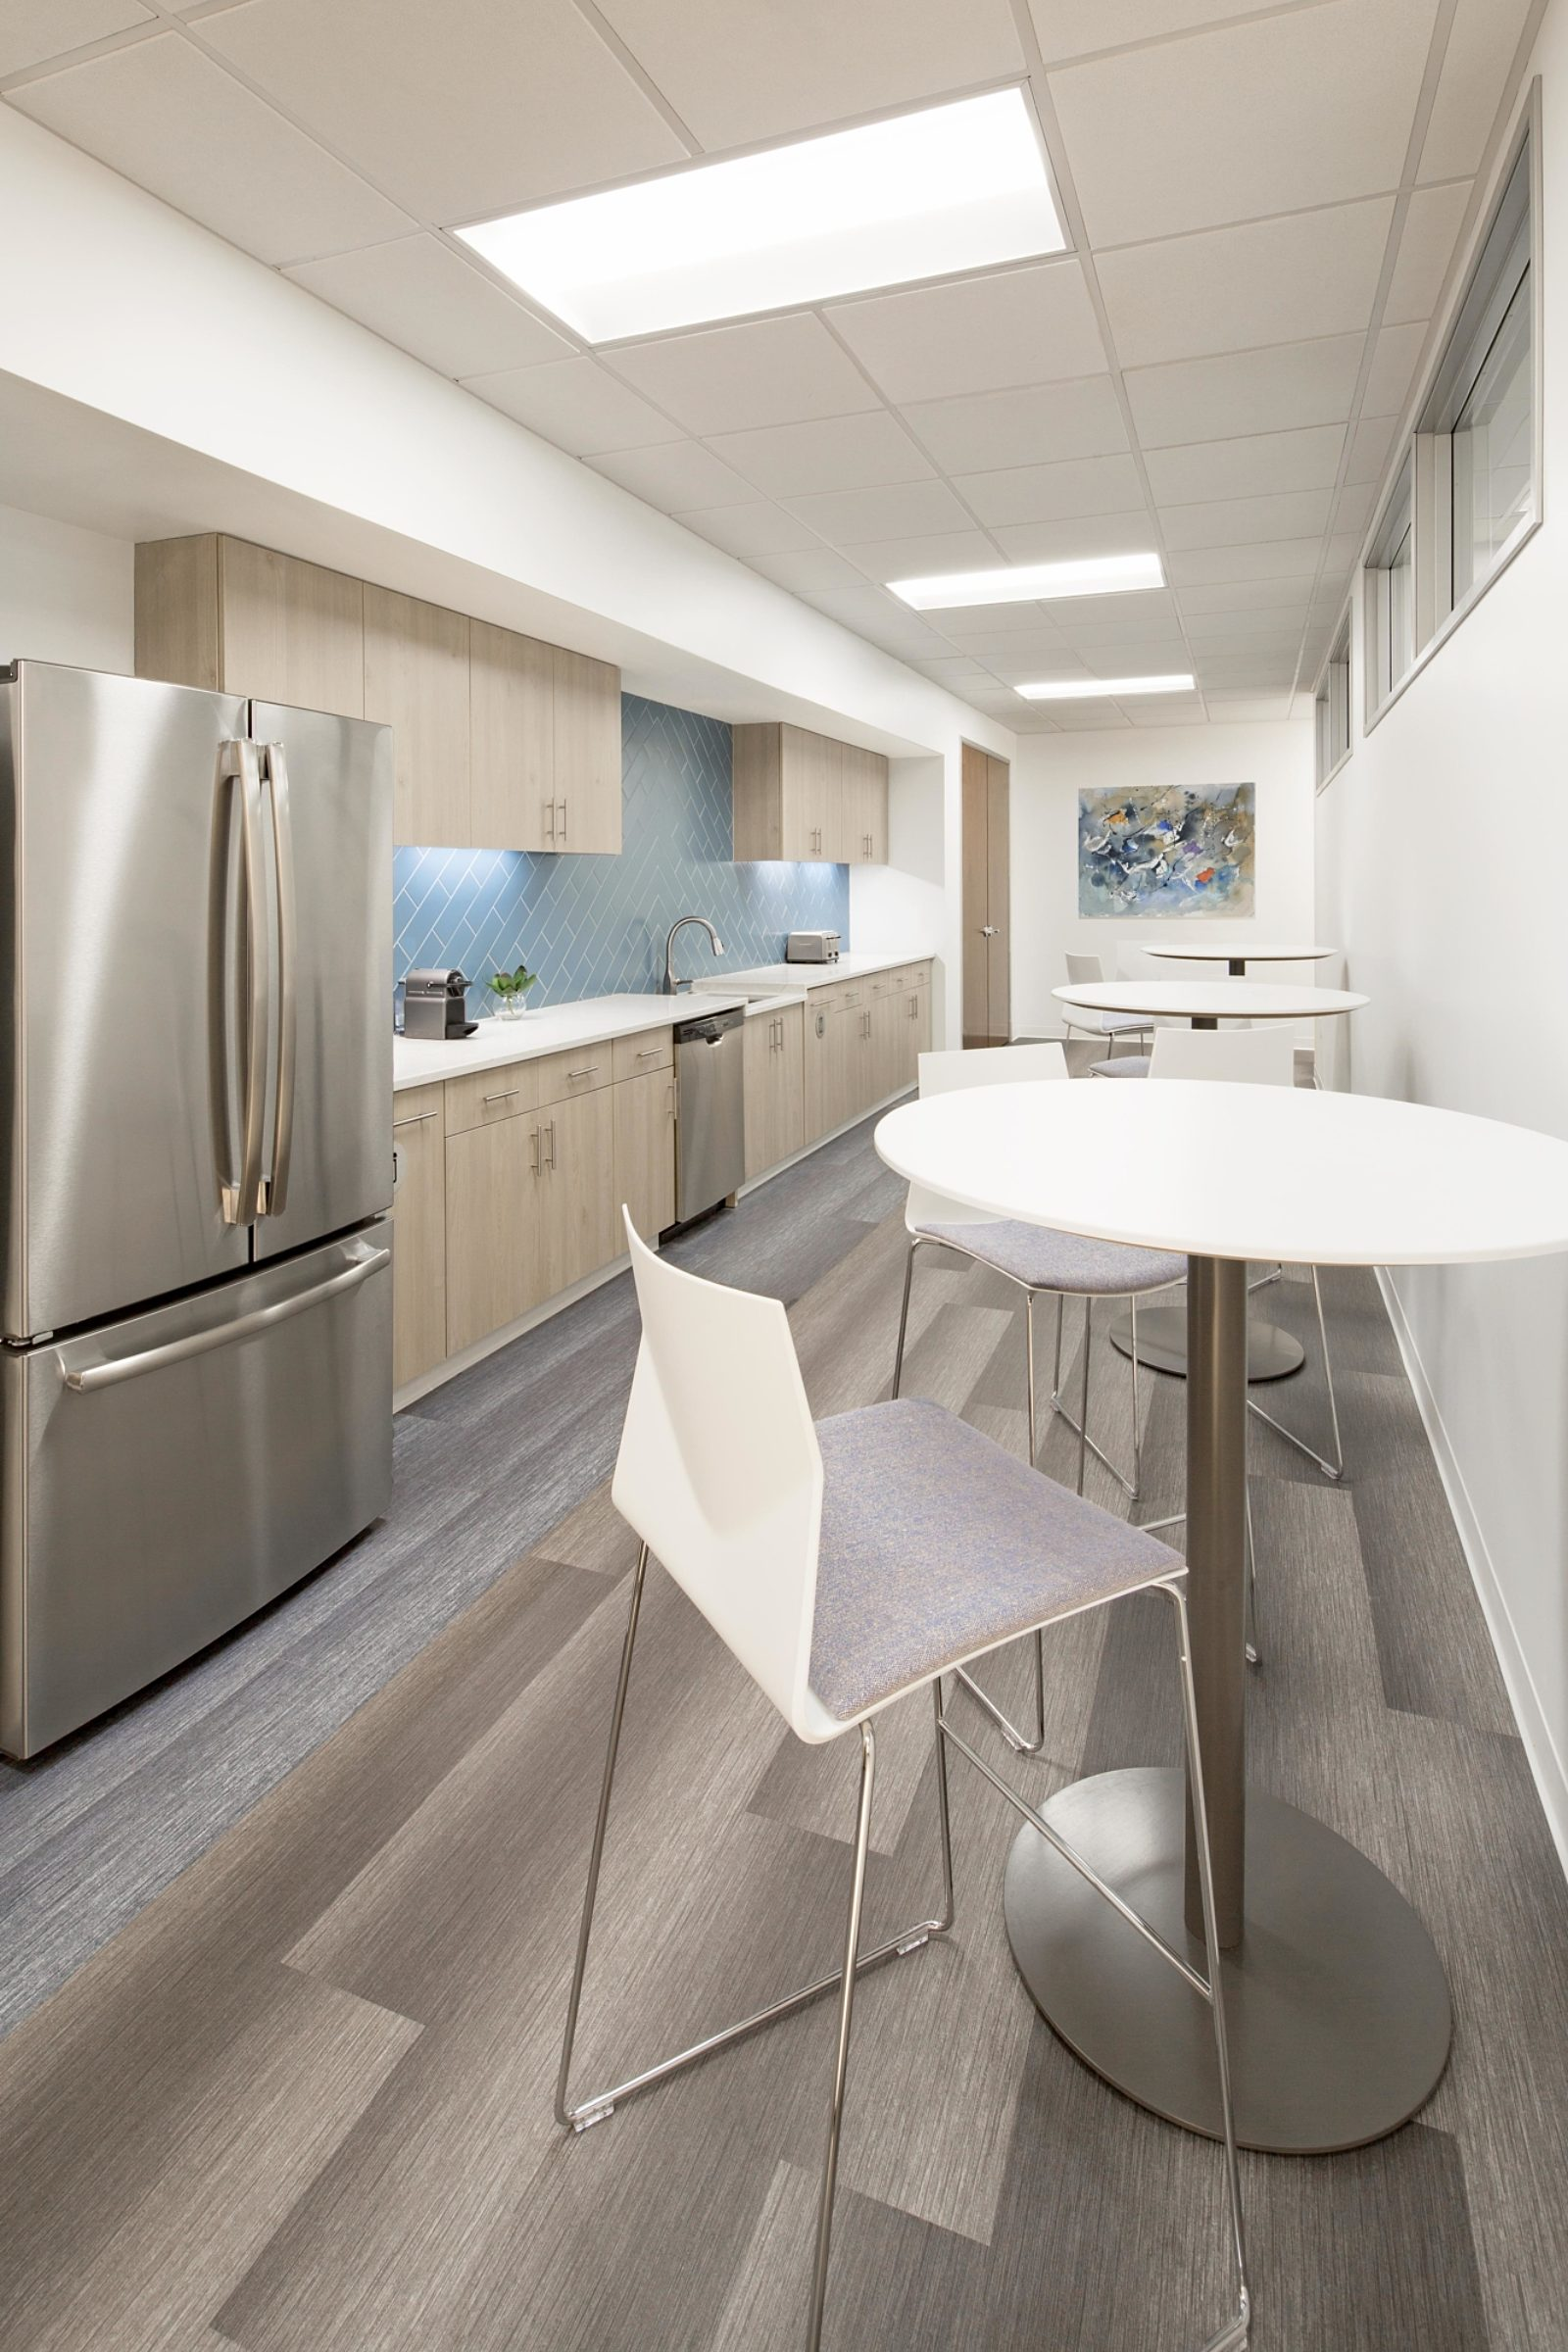 INCPAS Project Highlight: Long Kitchenette